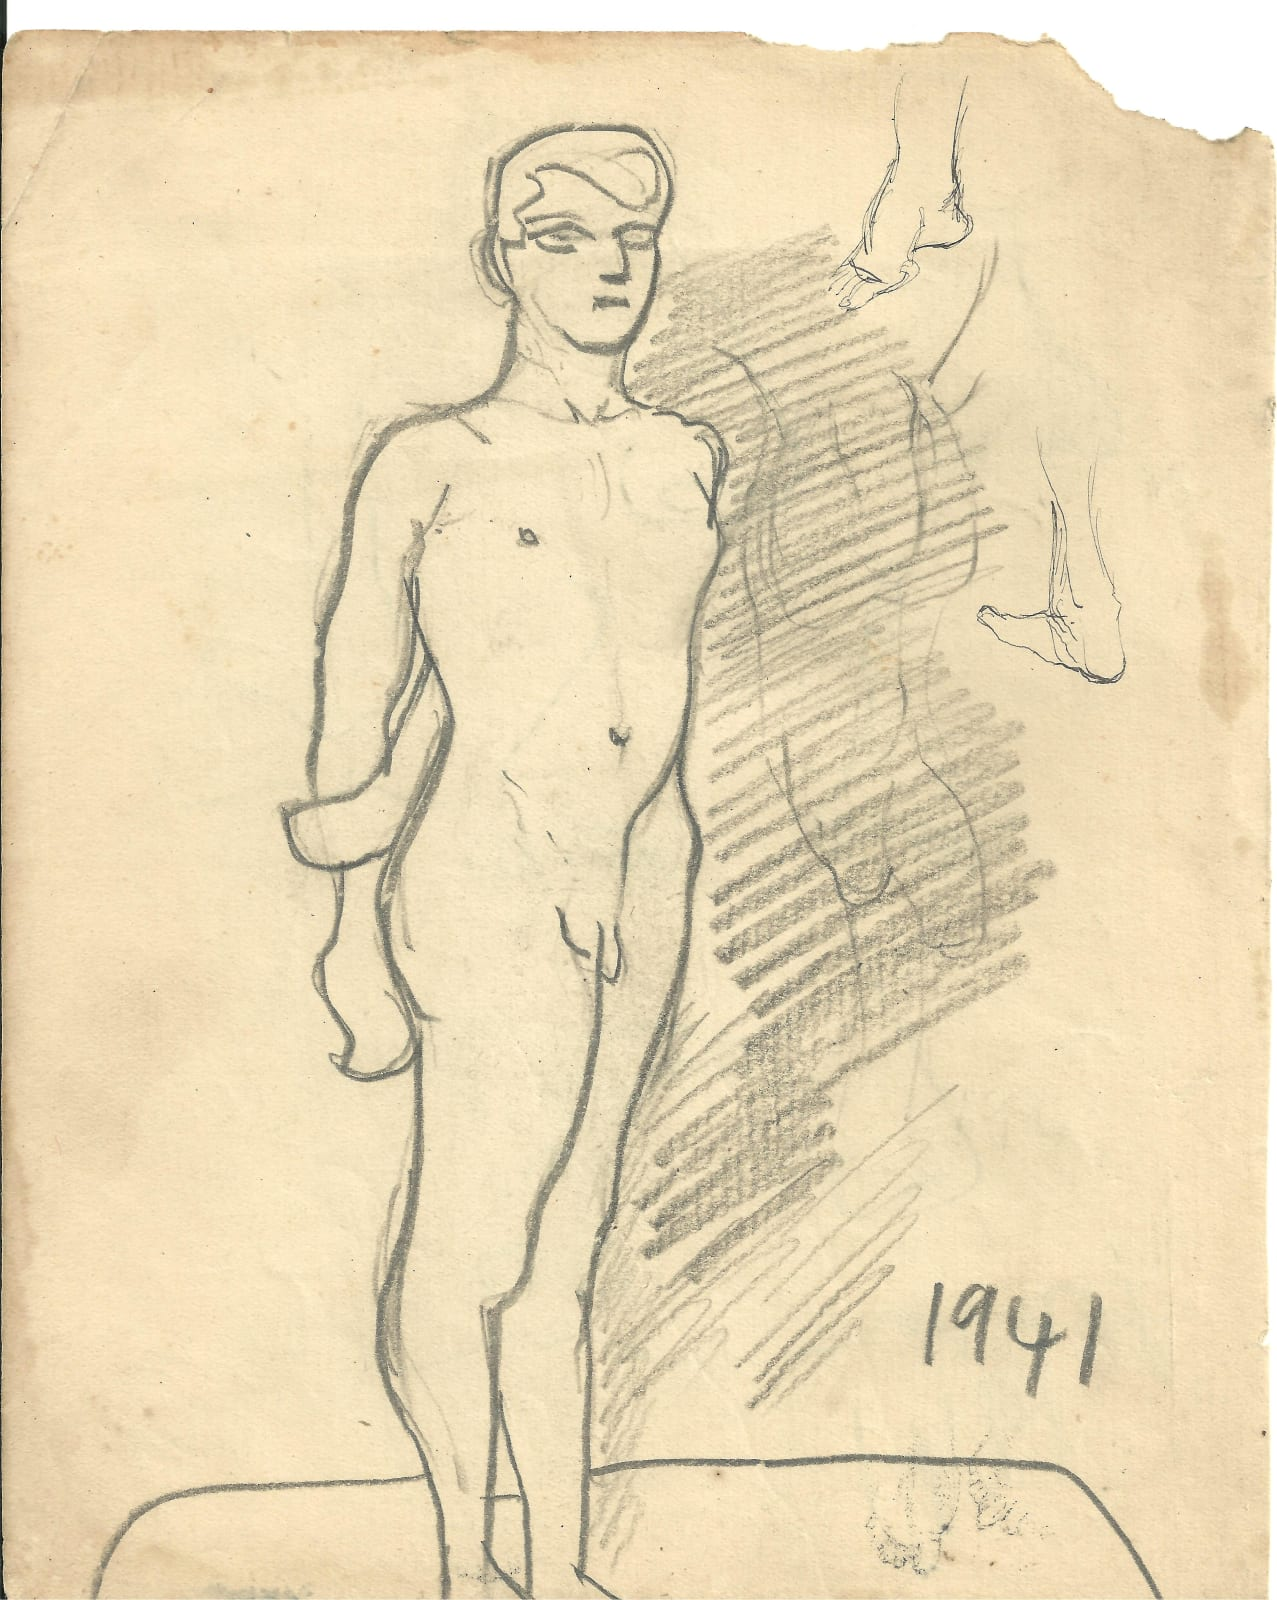 Francis Newton Souza, Untitled (Nude) recto ; Unittled (Noses) verso, 1941